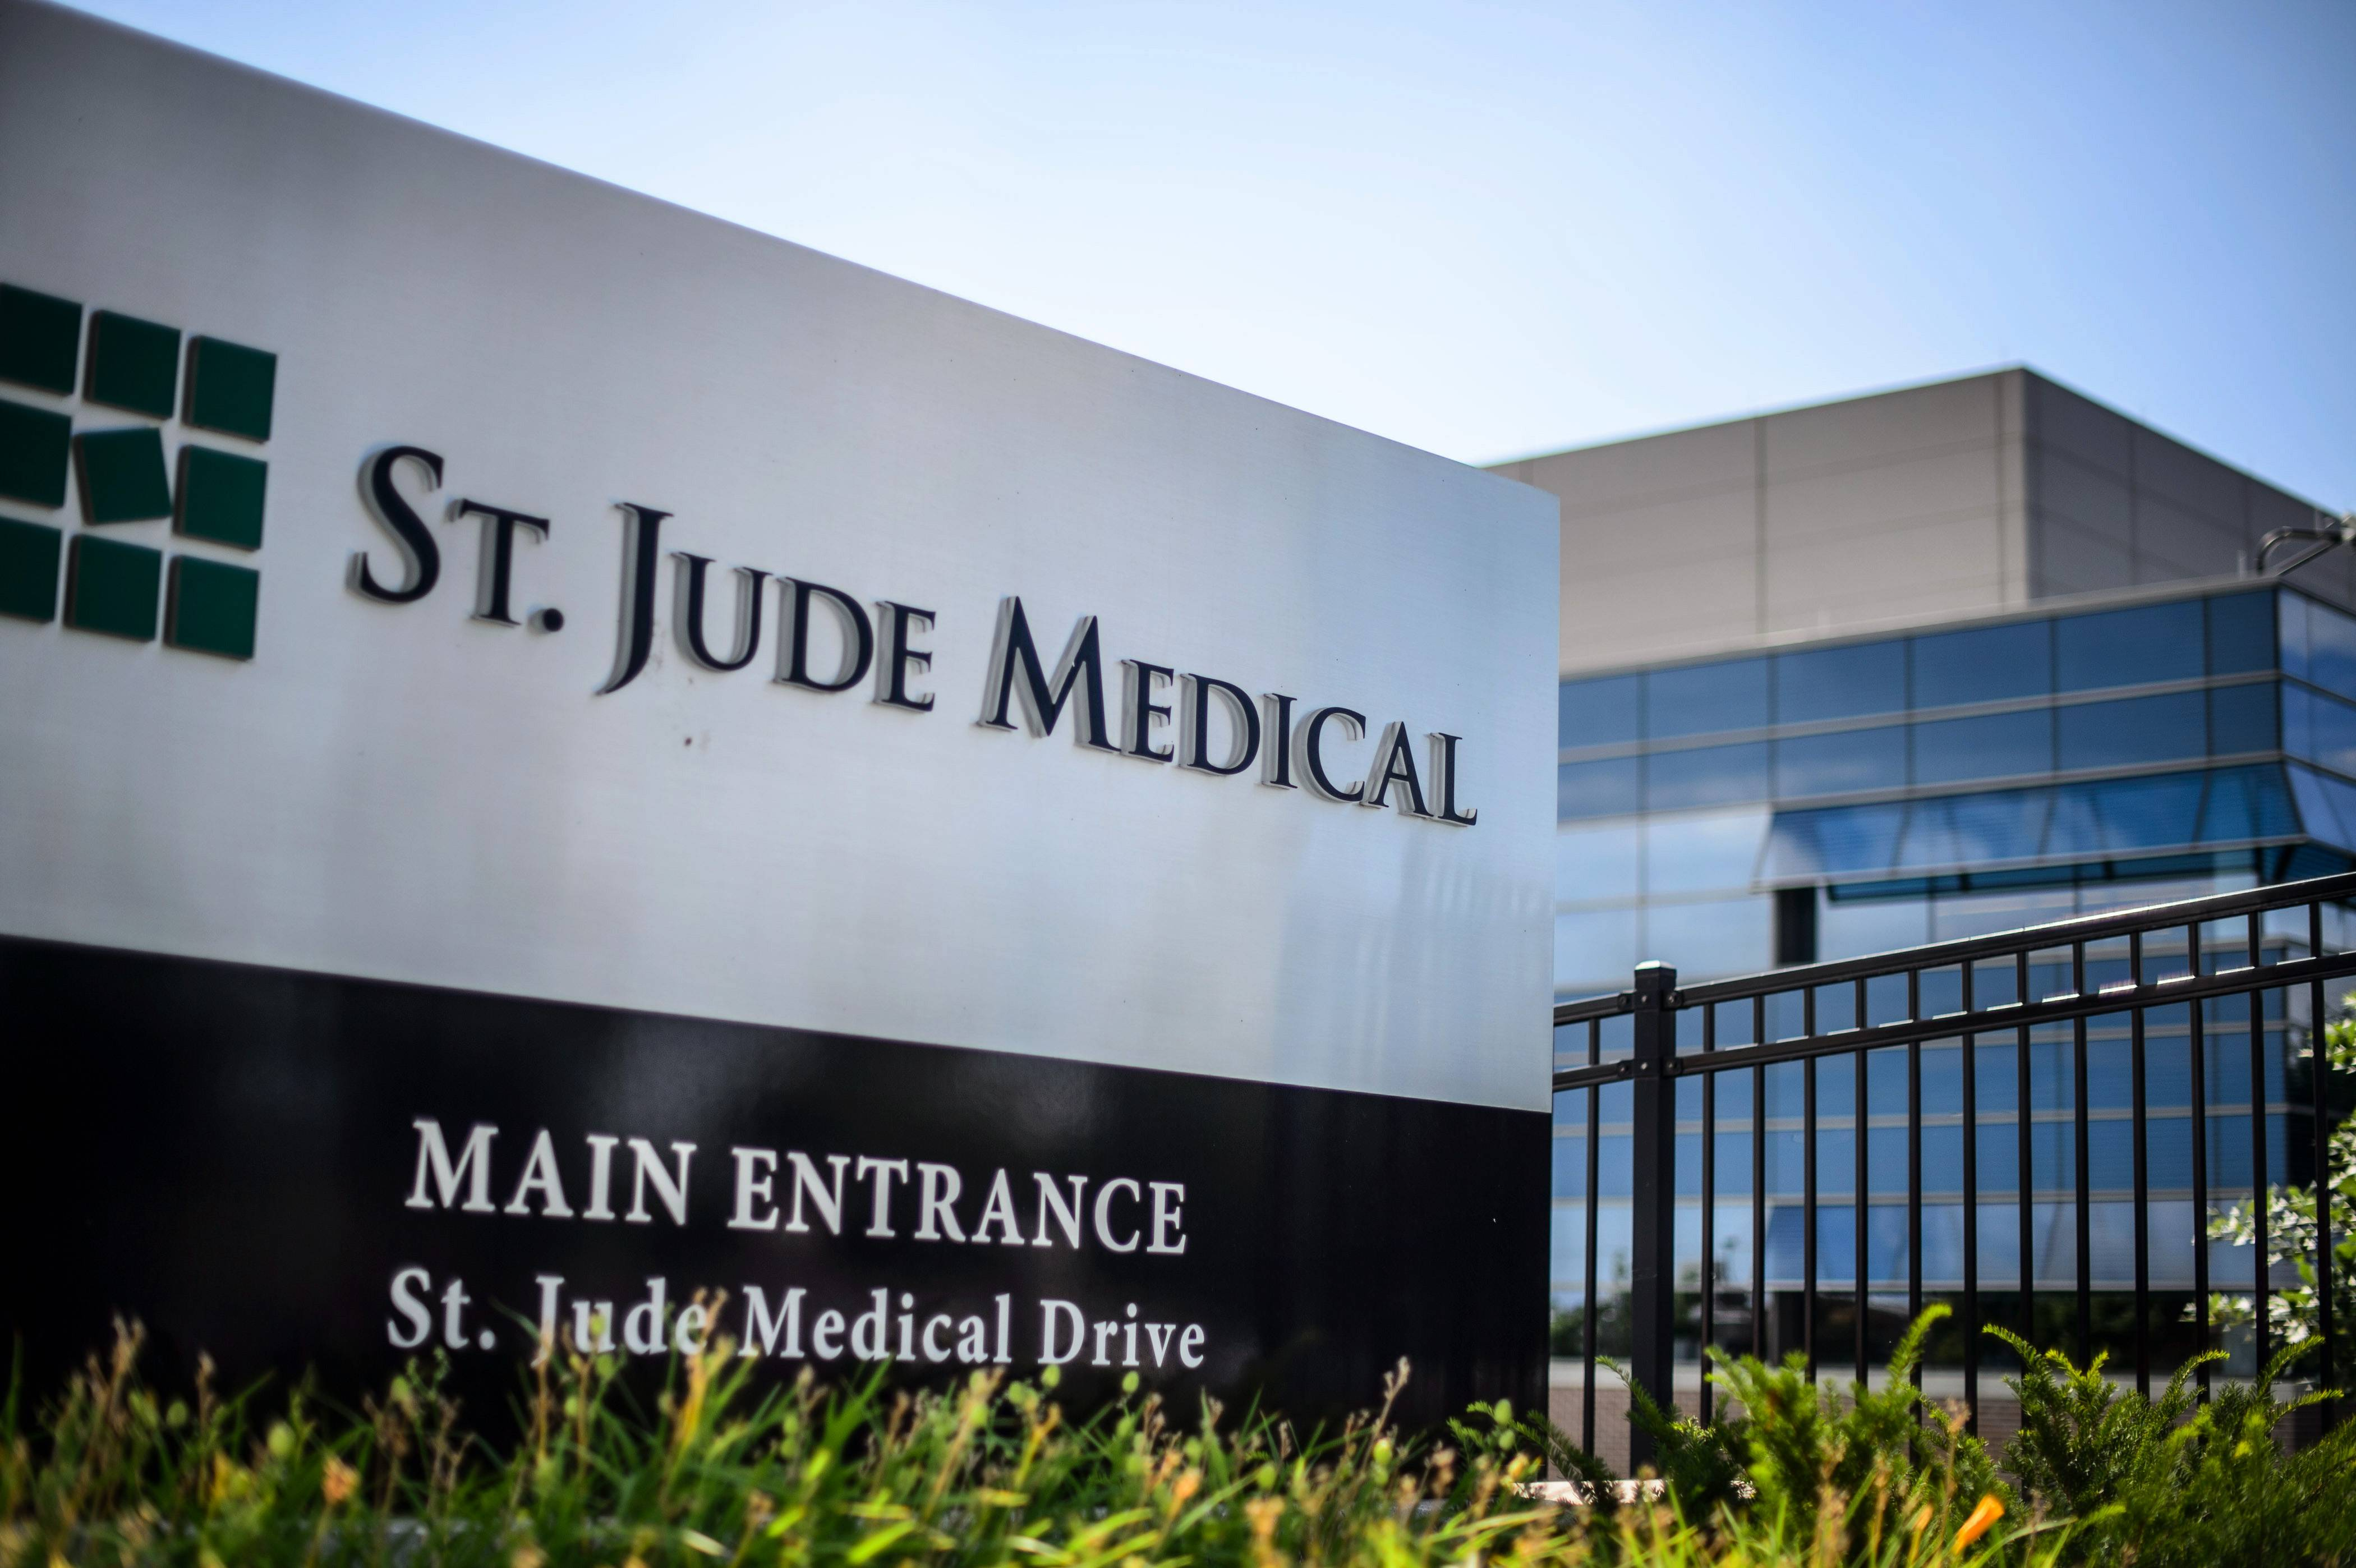 St. Jude Medical and its parent company, Libertyville Township-based Abbott Laboratories, are the subjects of a class-action lawsuit claiming St. Jude failed to act quickly in the recall of defective cardiac defibrillator devices.